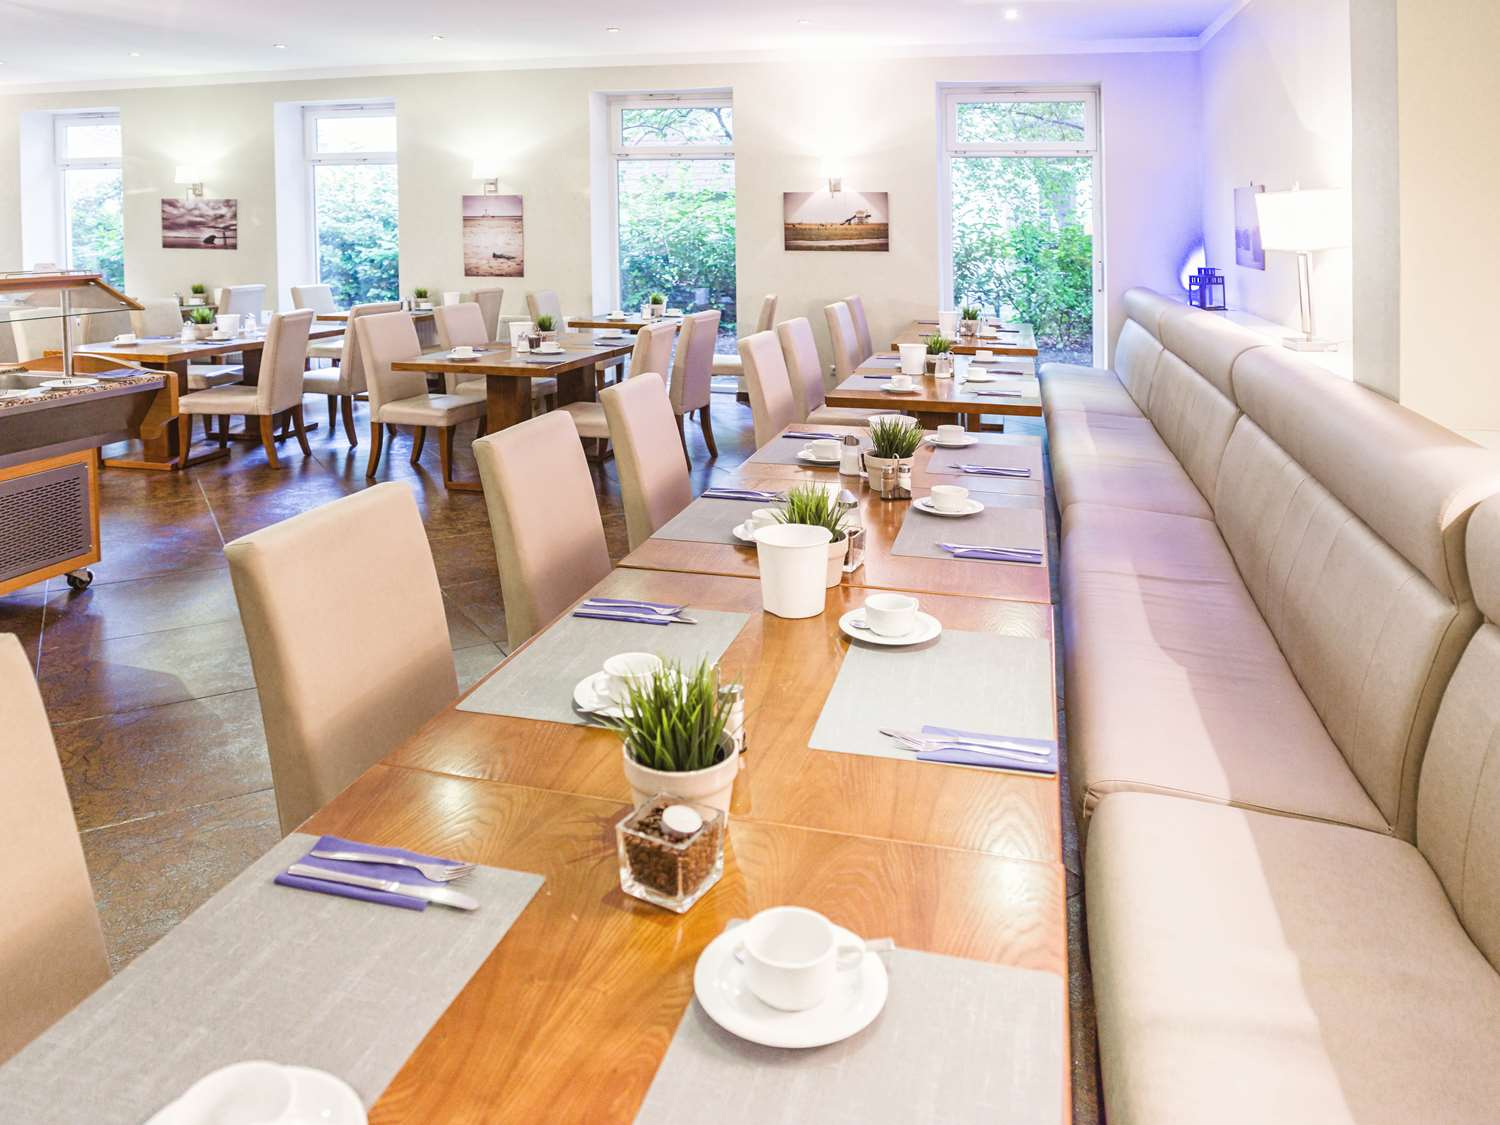 Restaurant - Hotel Hotel Domicil Hamburg By Golden Tulip